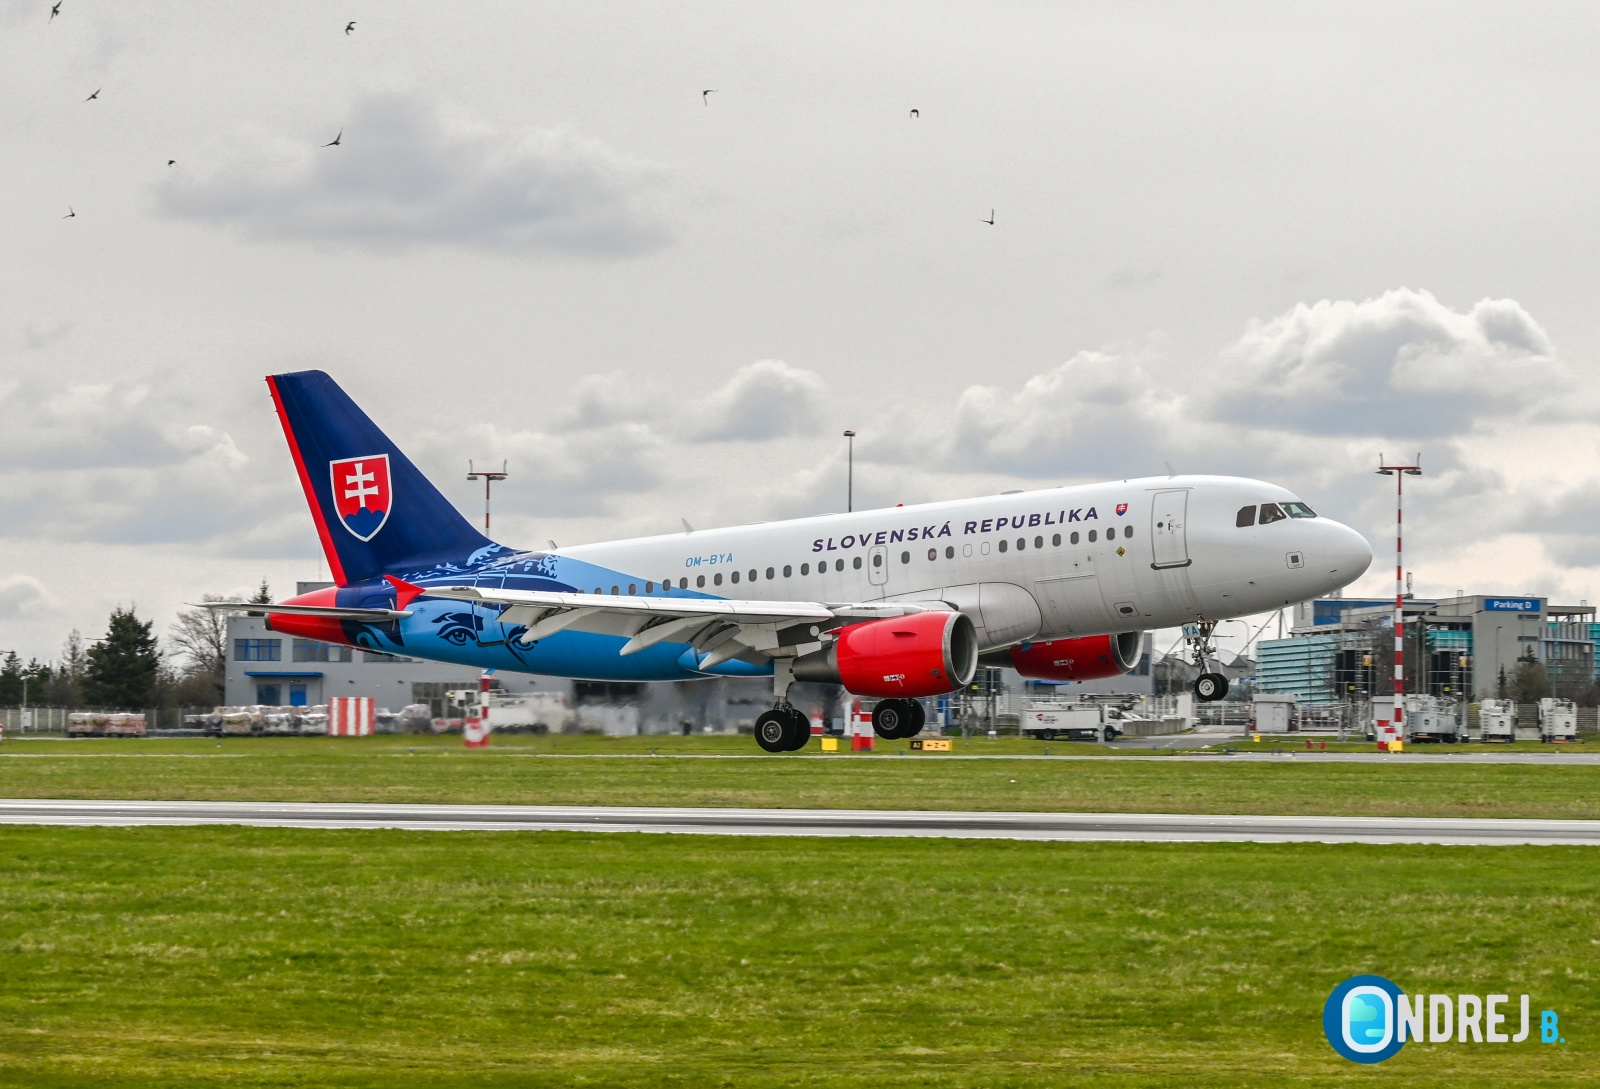 Slovak government Airbus A319